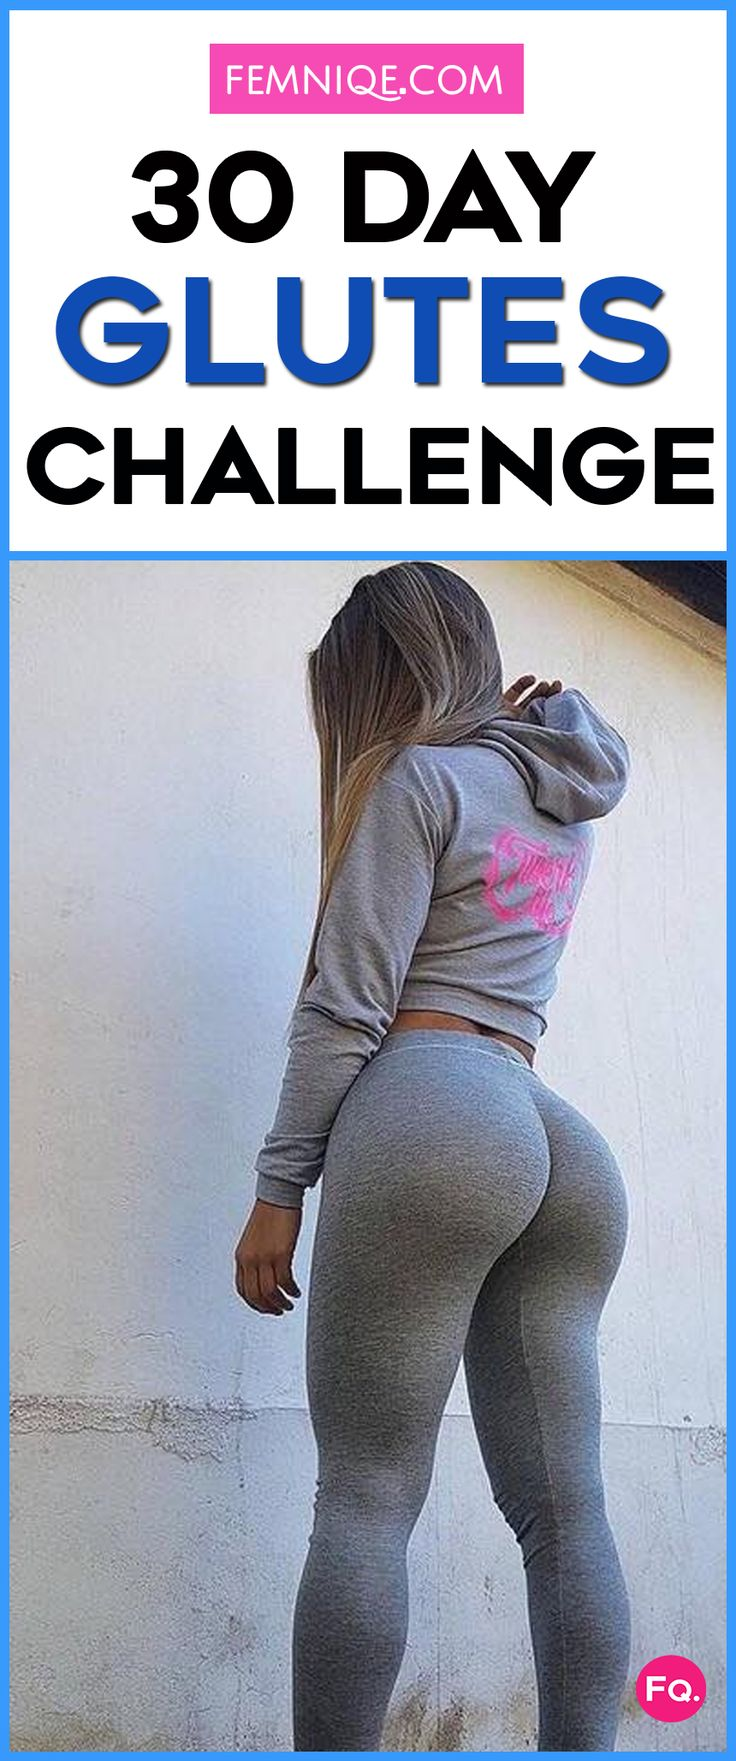 30 Day Glutes Challenge (Bigger Butt Workout Plan) - Want a glute exercise routine that will grow your butt bigger over the next 30 days? Check out this challenge. http://amzn.to/2s1tGlK